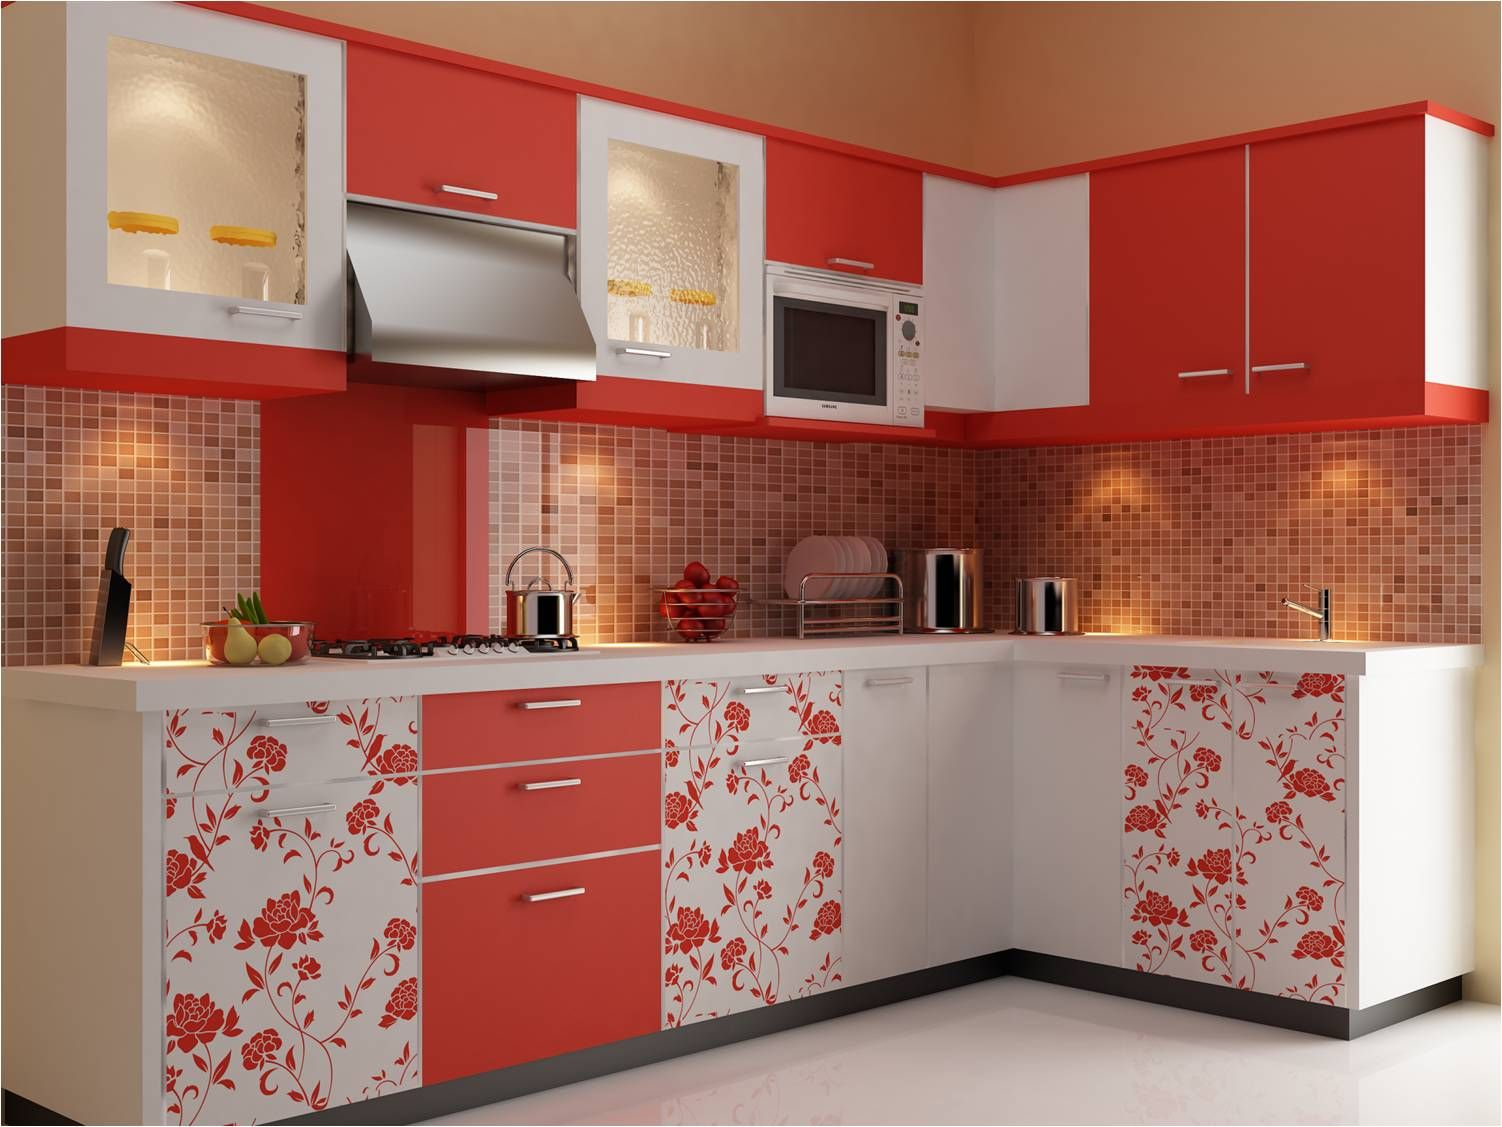 Modular kitchen furniture - Kitchen Design Exciting Pink Modular Kitchen Design Furniture With Floral And Brown Square Tile Wall Decor Ideas Feats Red White Cabinetary Also Modern